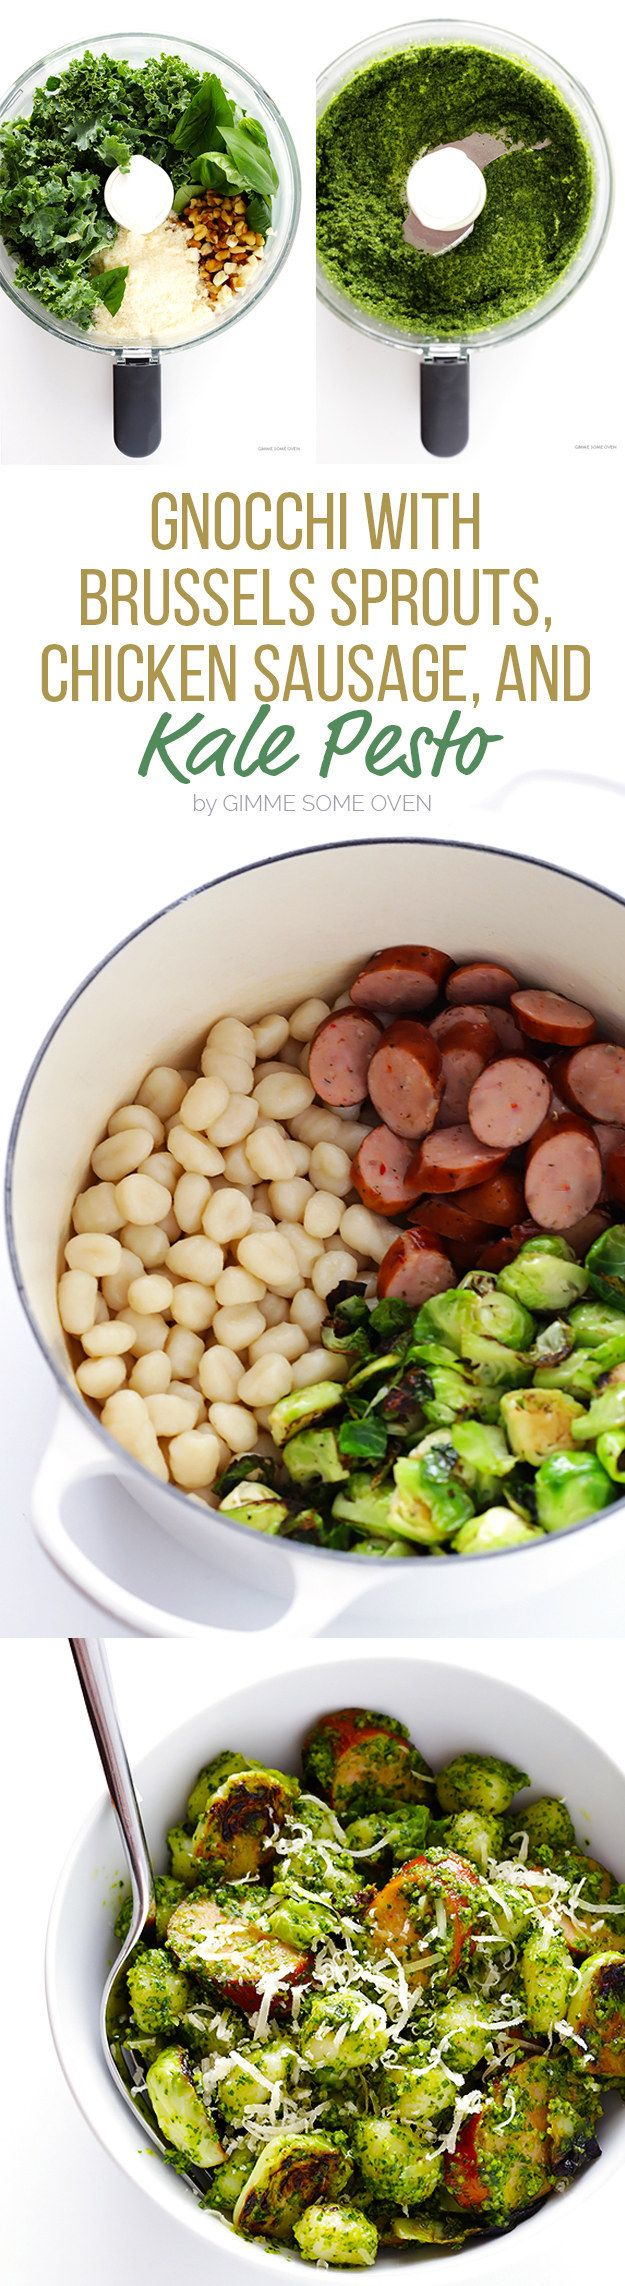 Gnocchi with Brussels Sprouts, Chicken Sausage, and Kale Pesto | Here Are 7 Fall Dinners To Make This Week